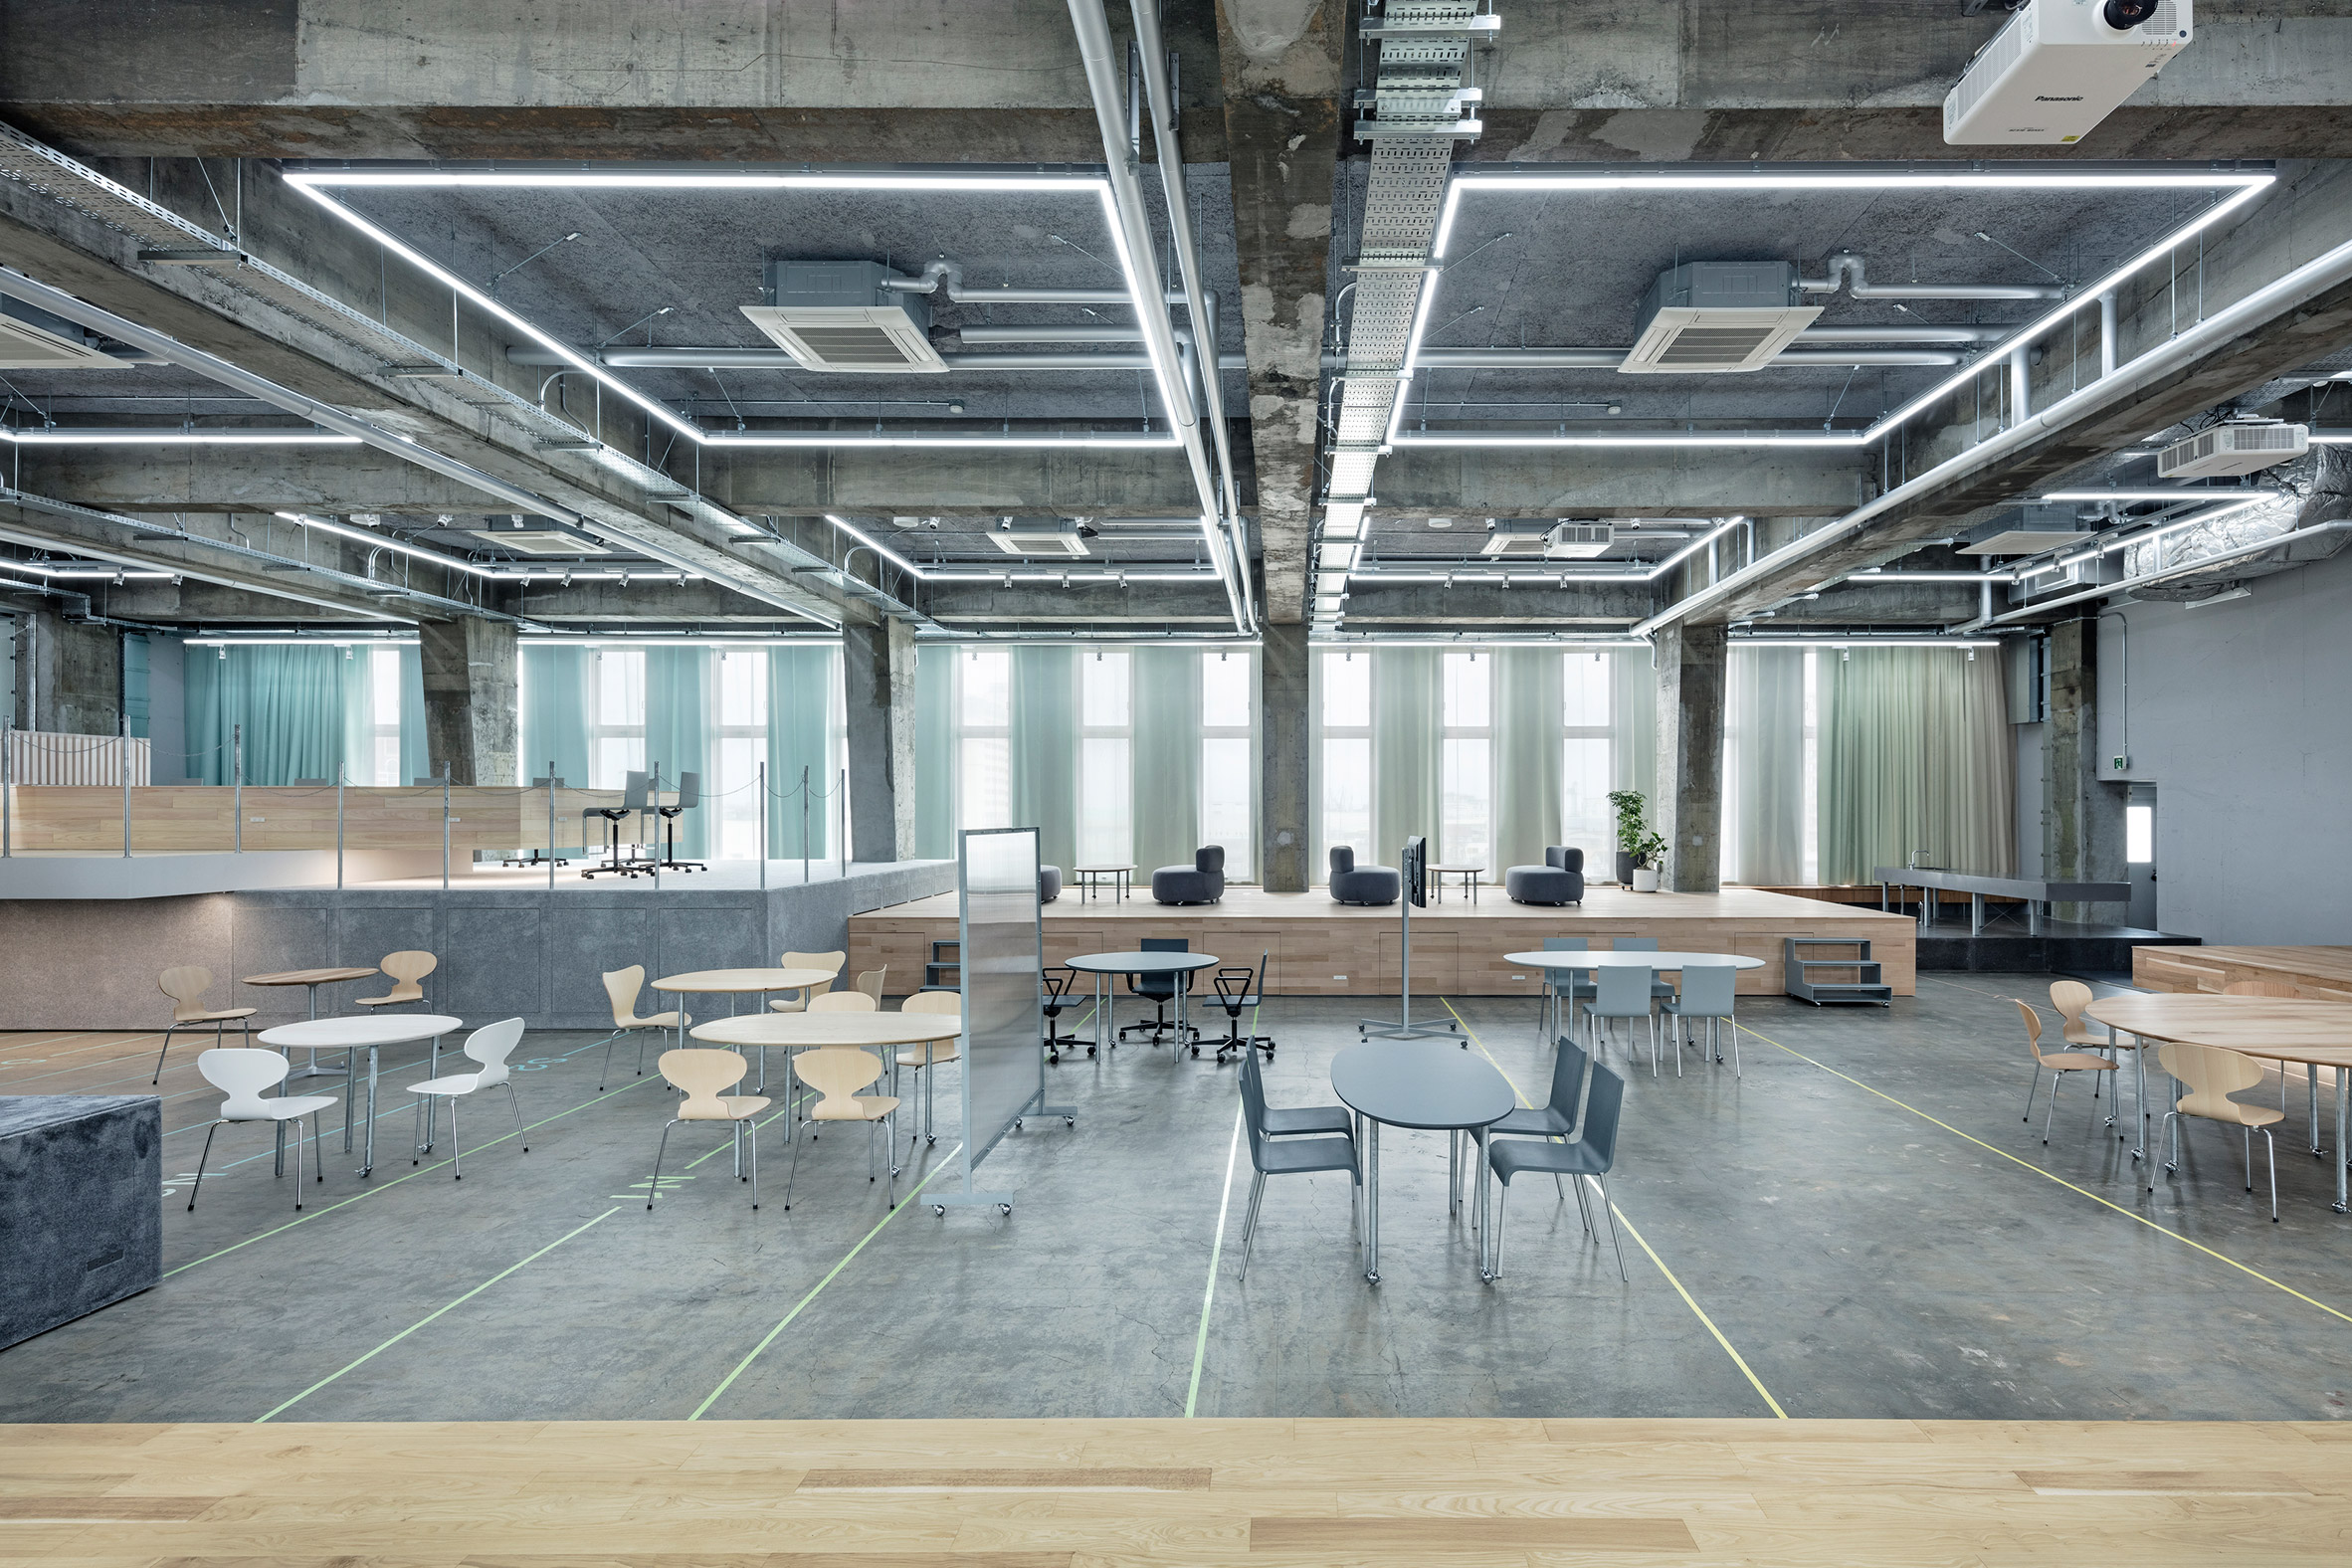 CODO Suzuyo head office by Shuhei Goto Architects